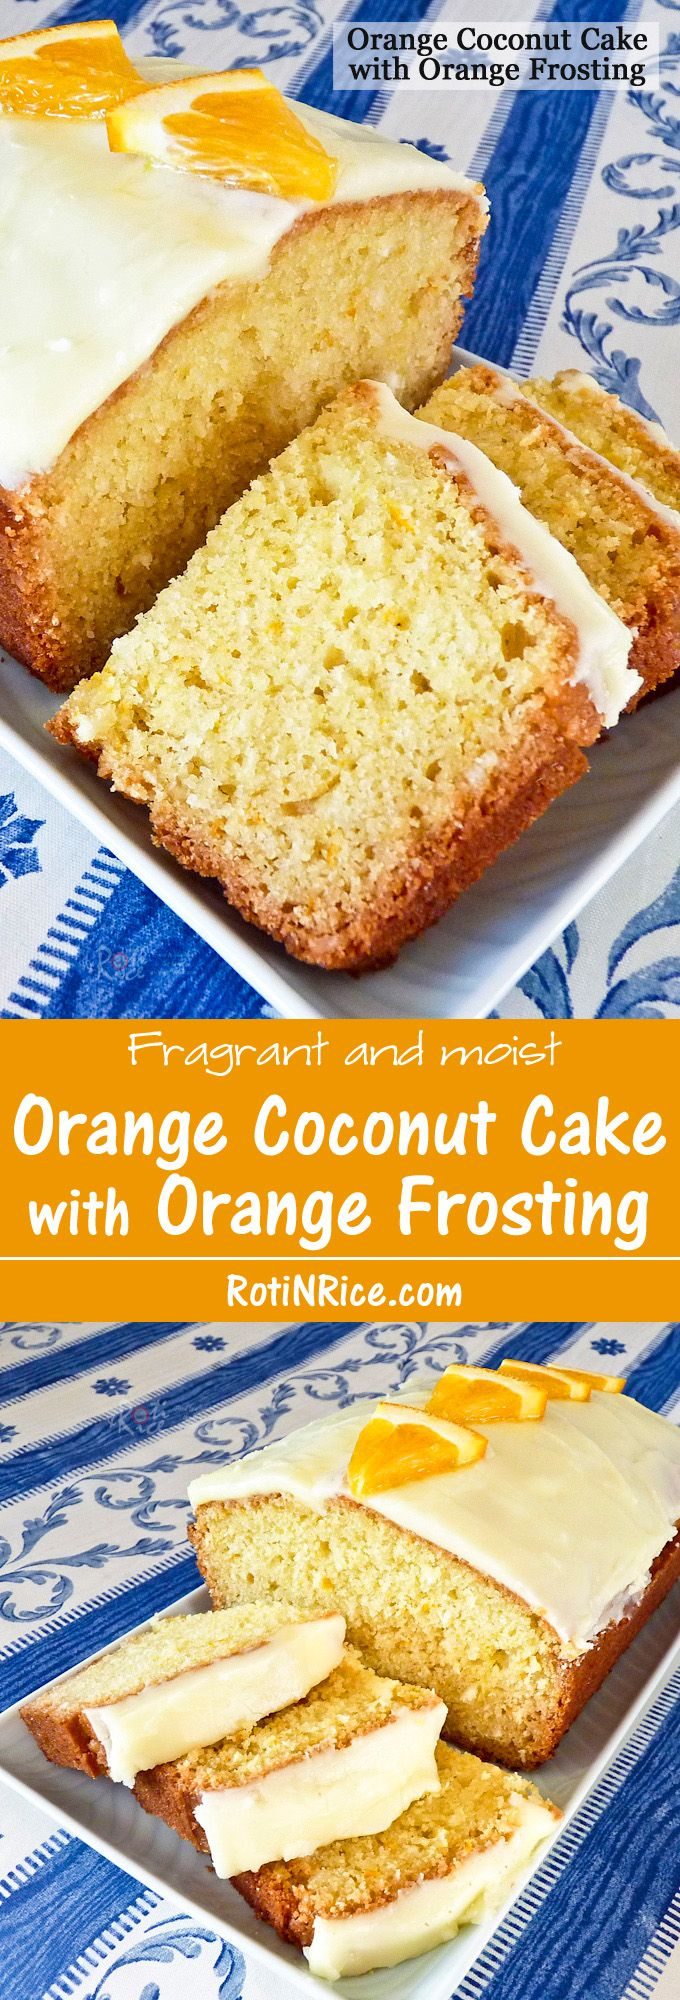 Cake Decorating Course Worthing : Best 25+ Orange frosting ideas on Pinterest Cupcake ...